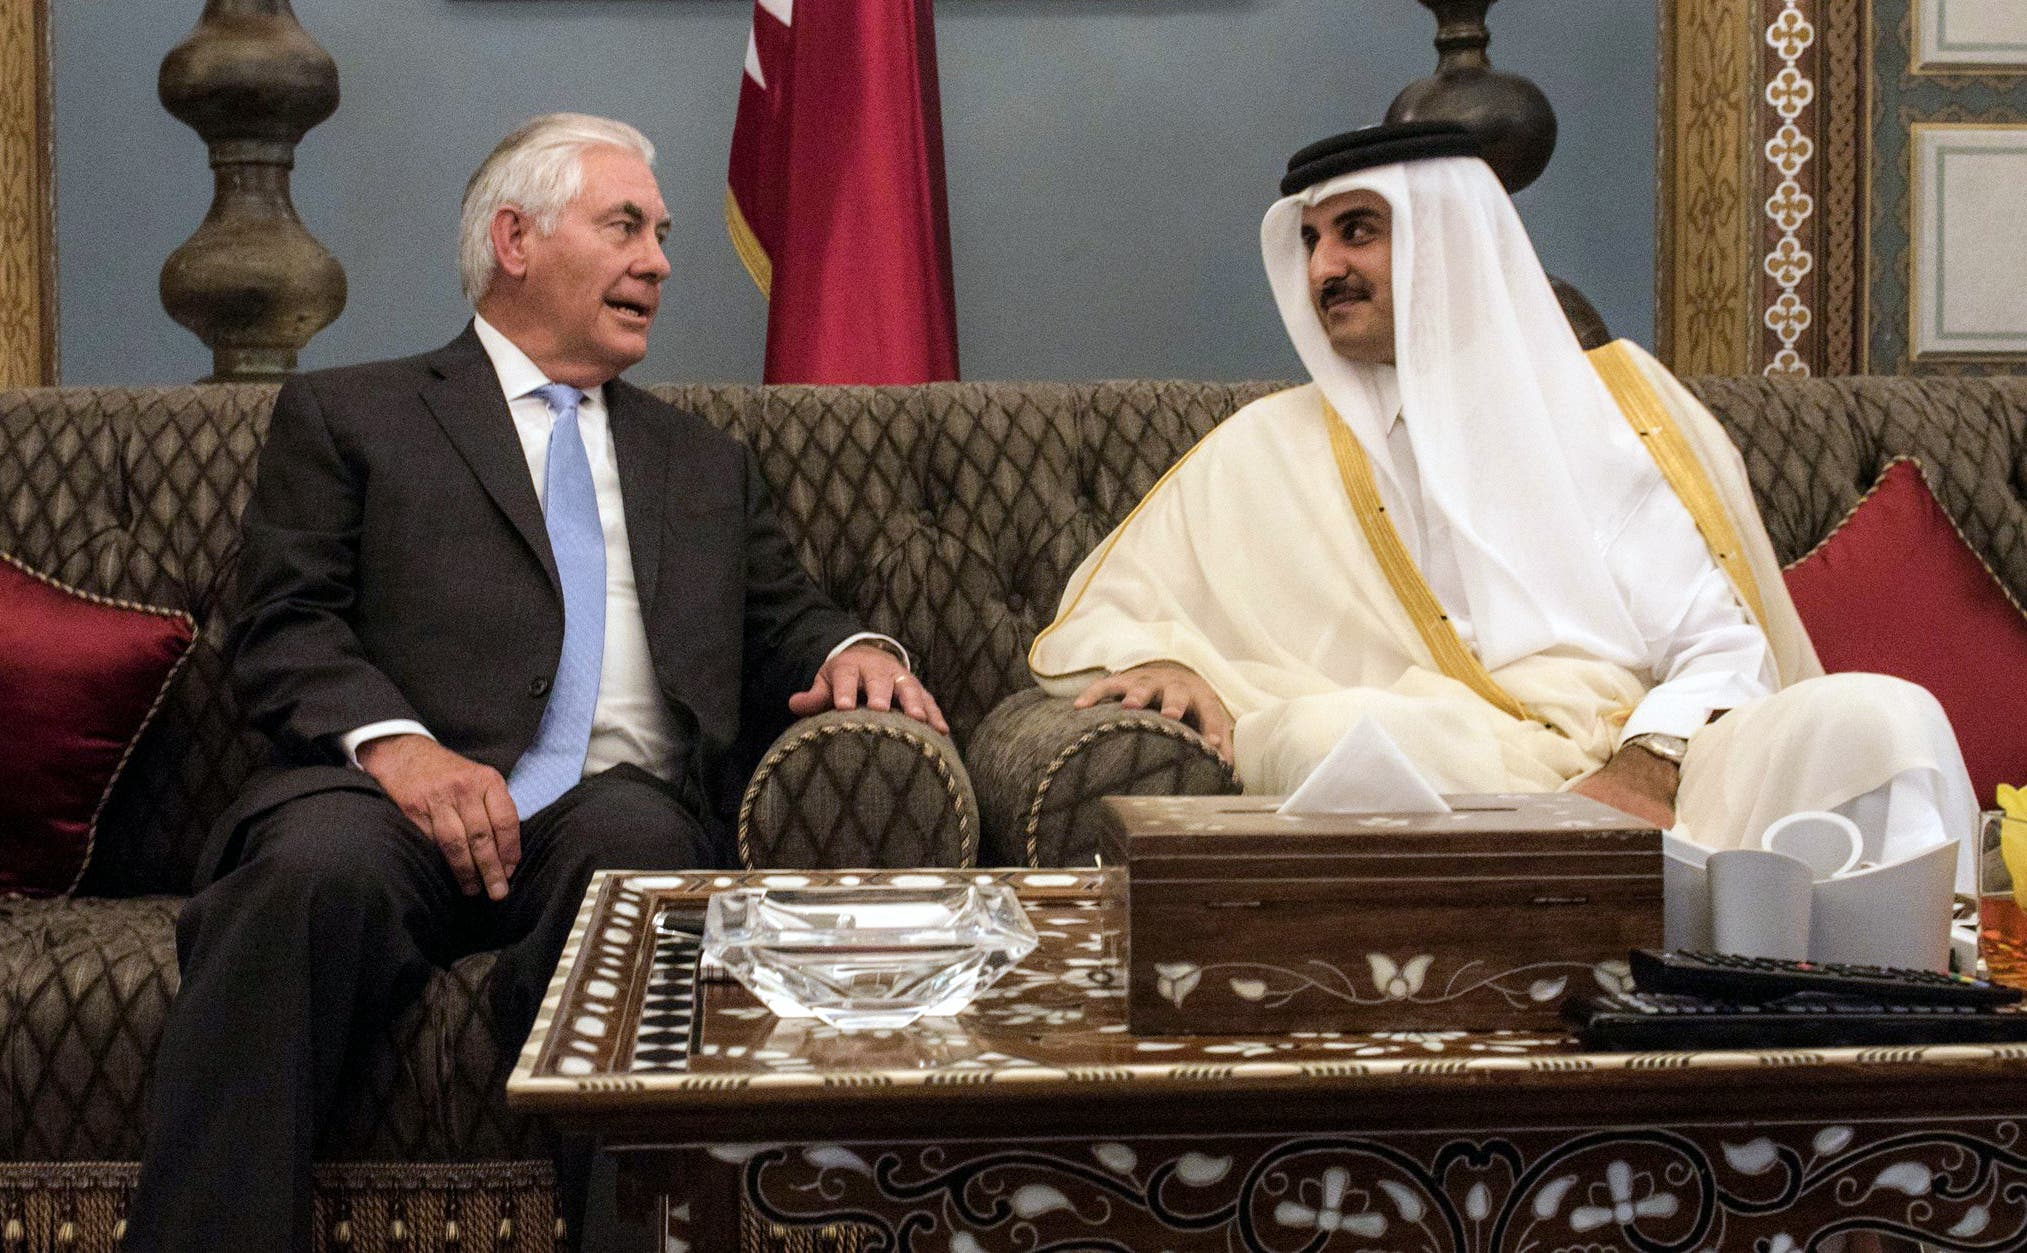 A handout picture provided by the US Embassy in Doha's Official Twitter account on July 11, 2017 shows US Secretary of State Rex Tillerson (L) meeting with Qatar's Emir Sheikh Tamim bin Hamad Al-Thani at the Prince's Sea Palace residence in the capital Doha. (AFP)